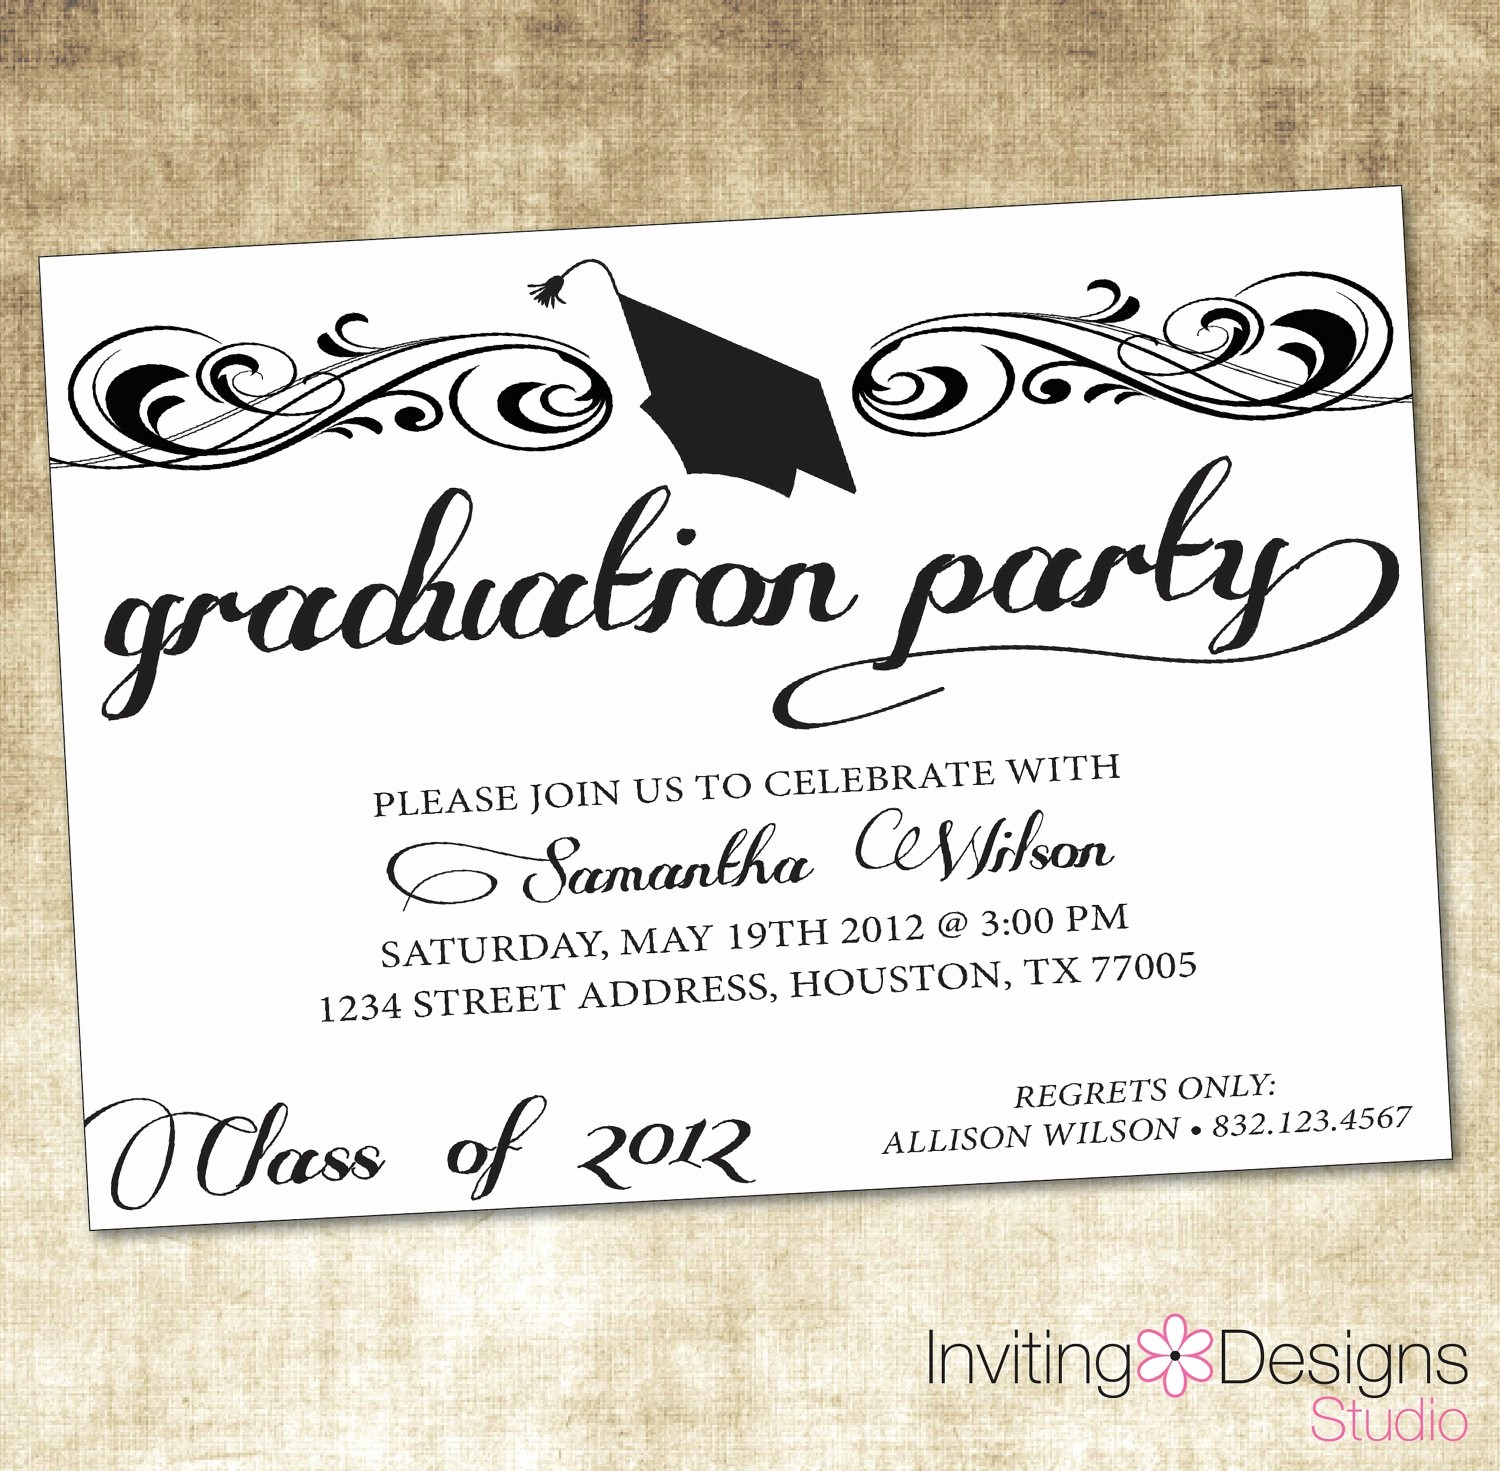 Template for Graduation Party Invitation New Graduation Party Invitations Graduation Party